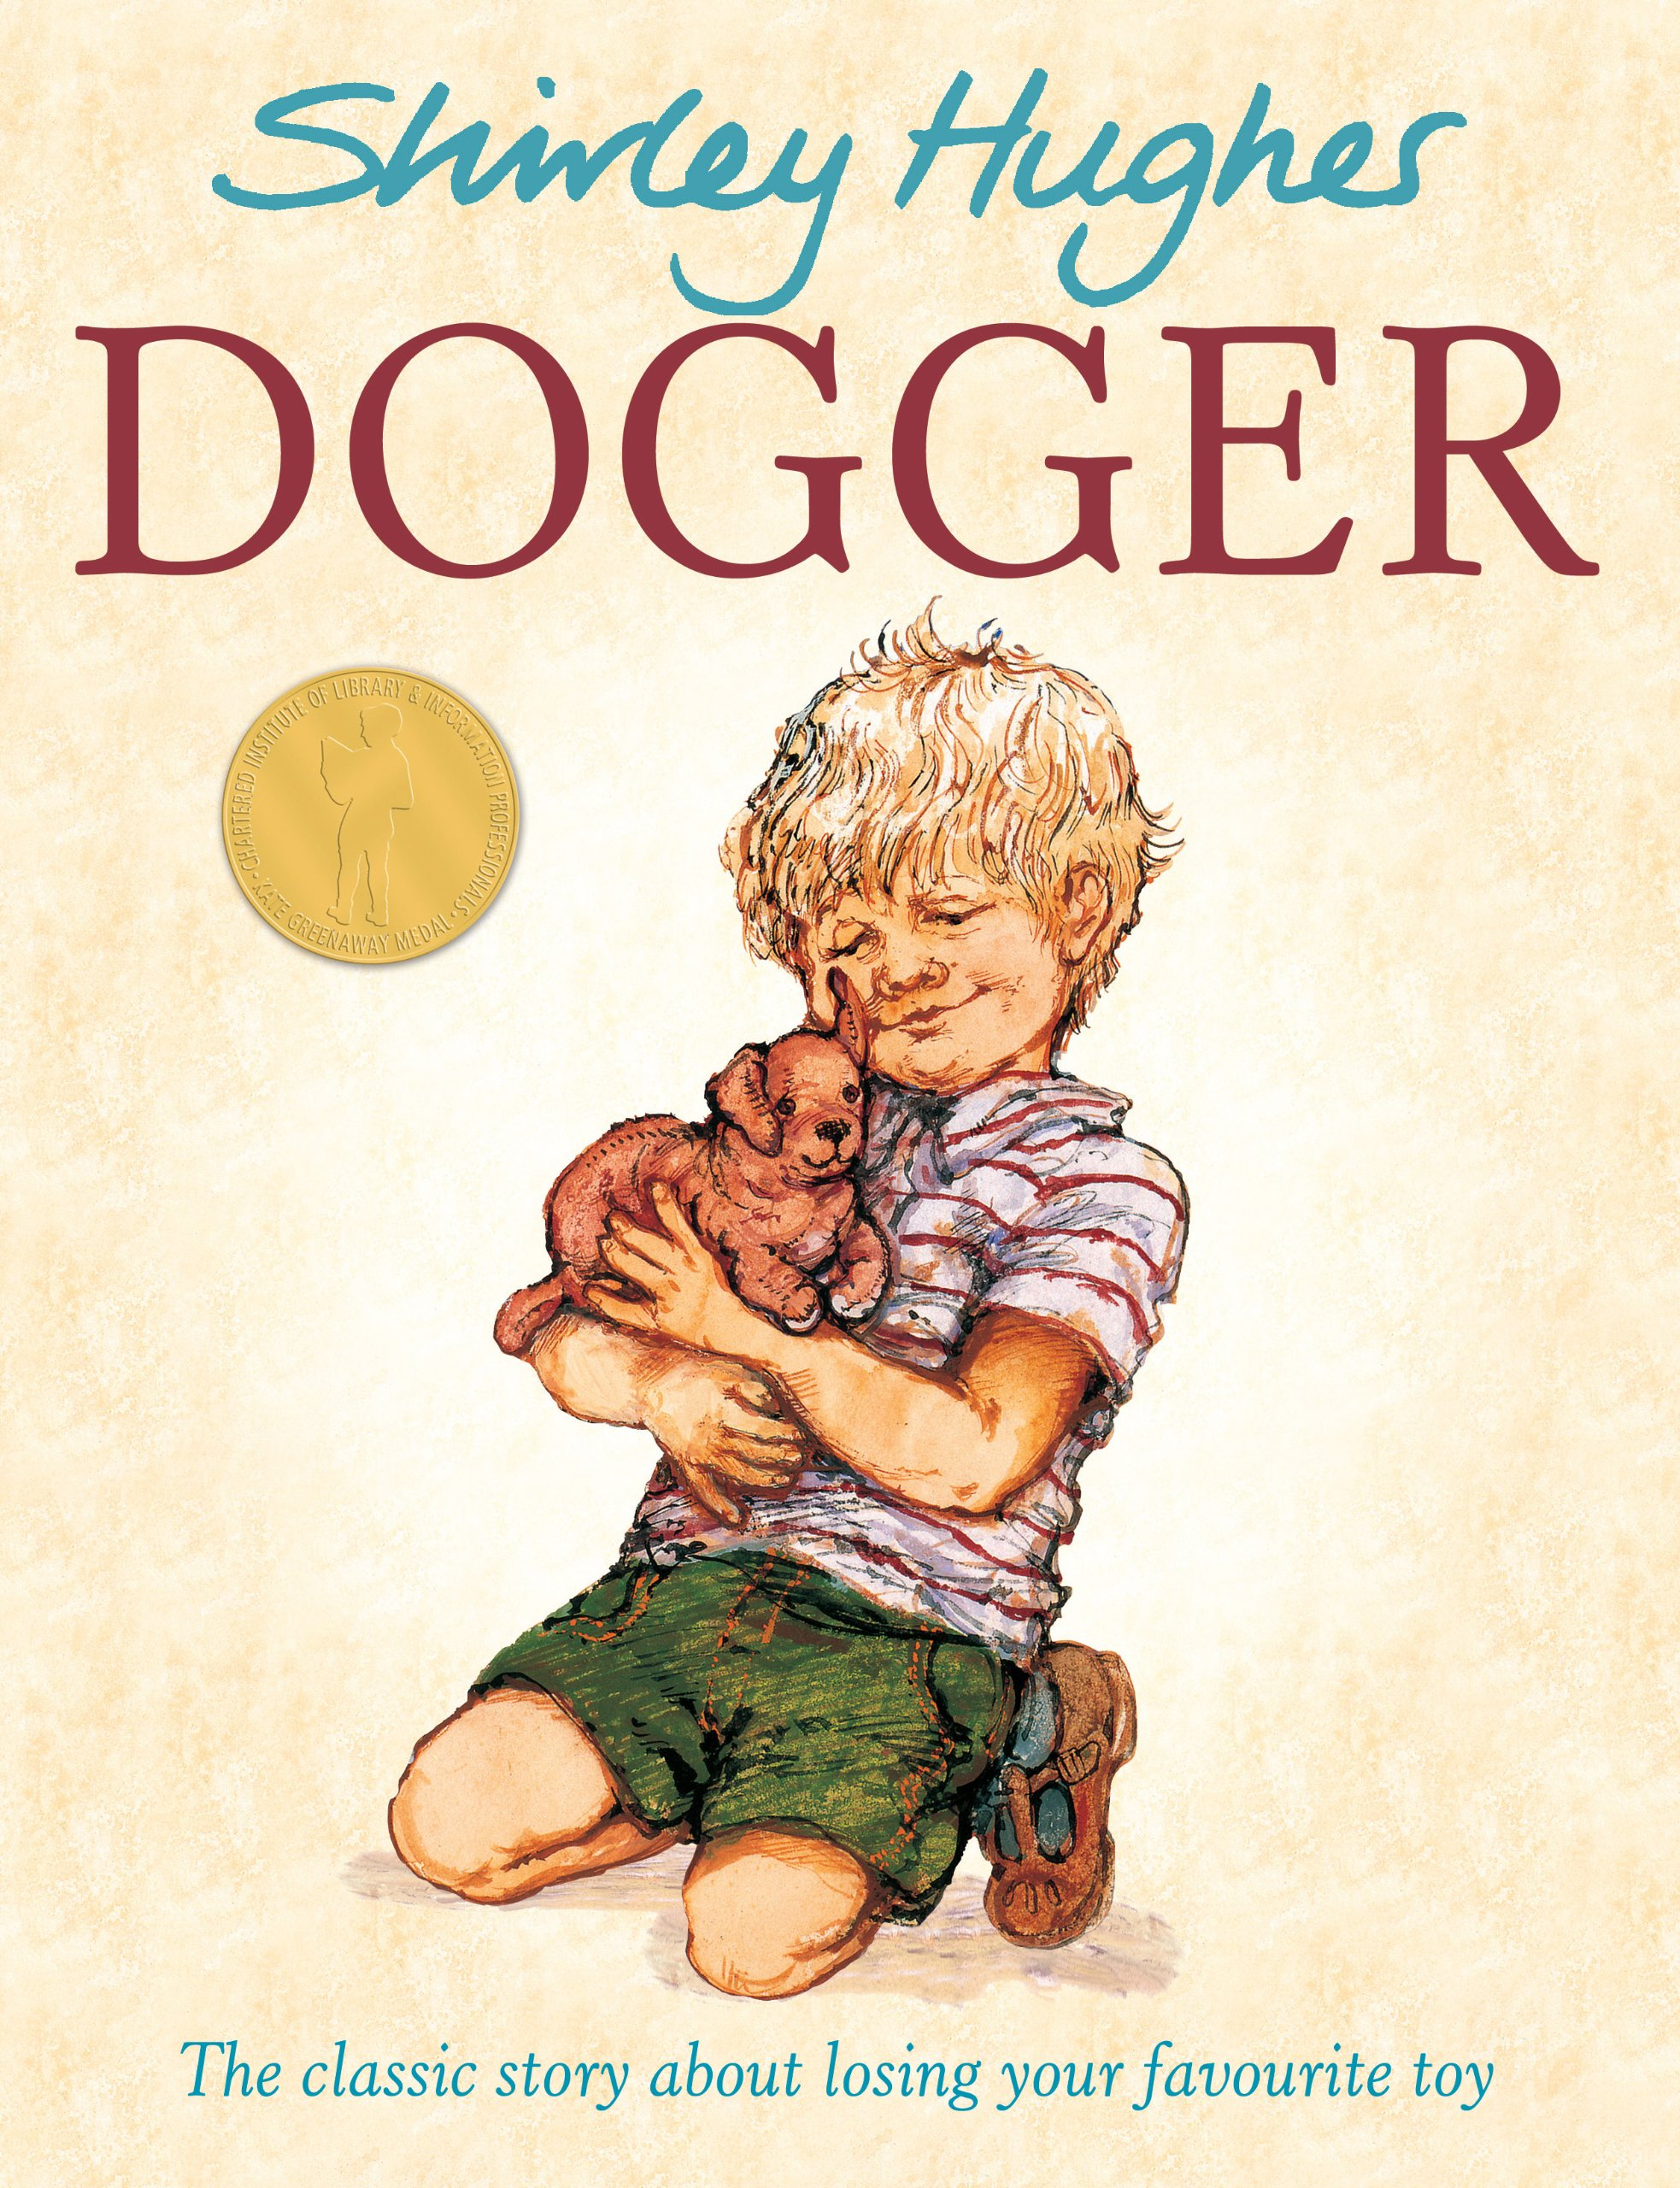 Dogger: Amazon.co.uk: Hughes, Shirley: 9781862308053: Books